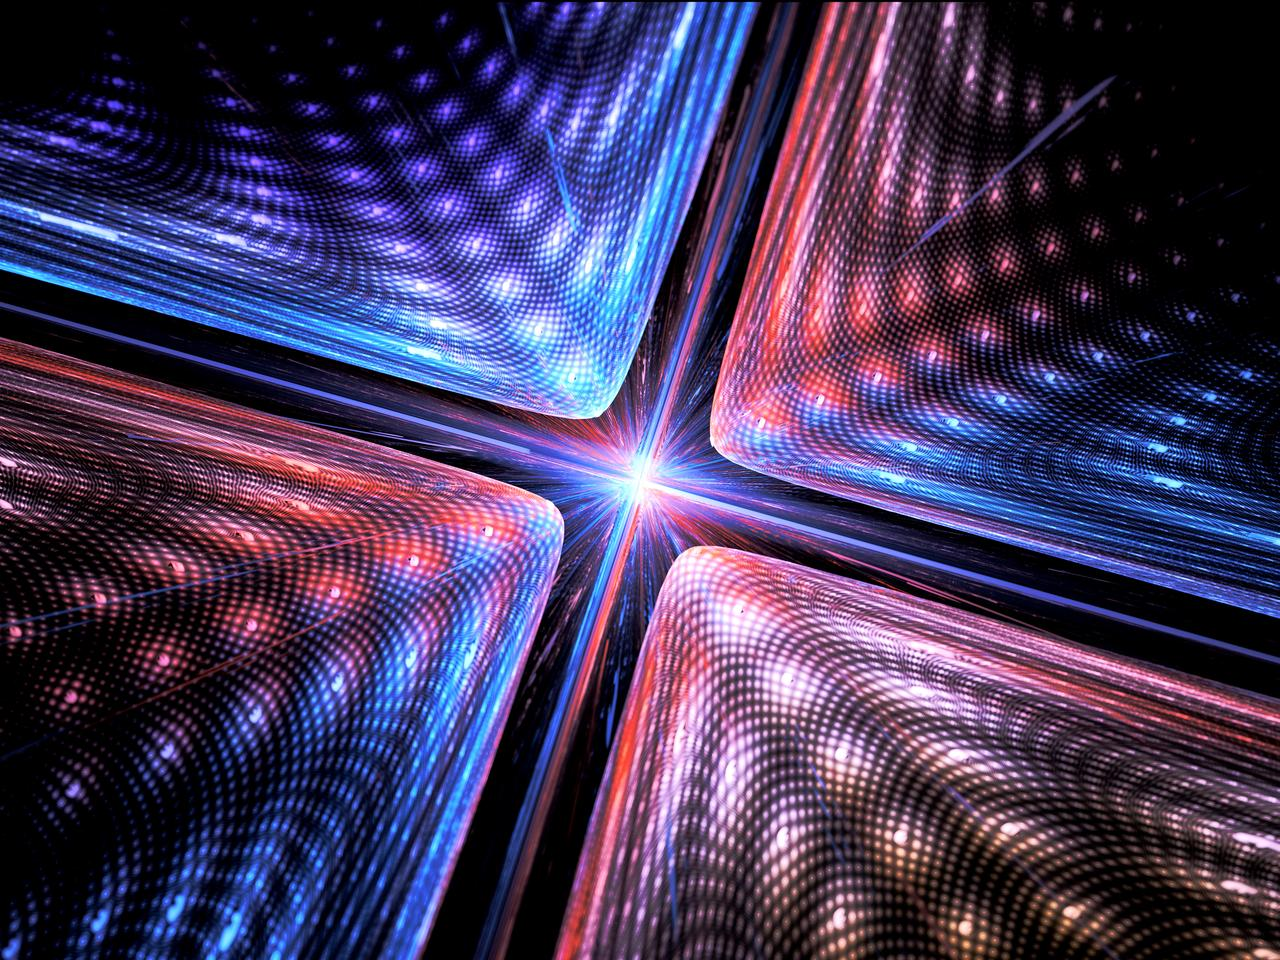 Researchers relied on lasers and supercool temperatures to trap their qubit